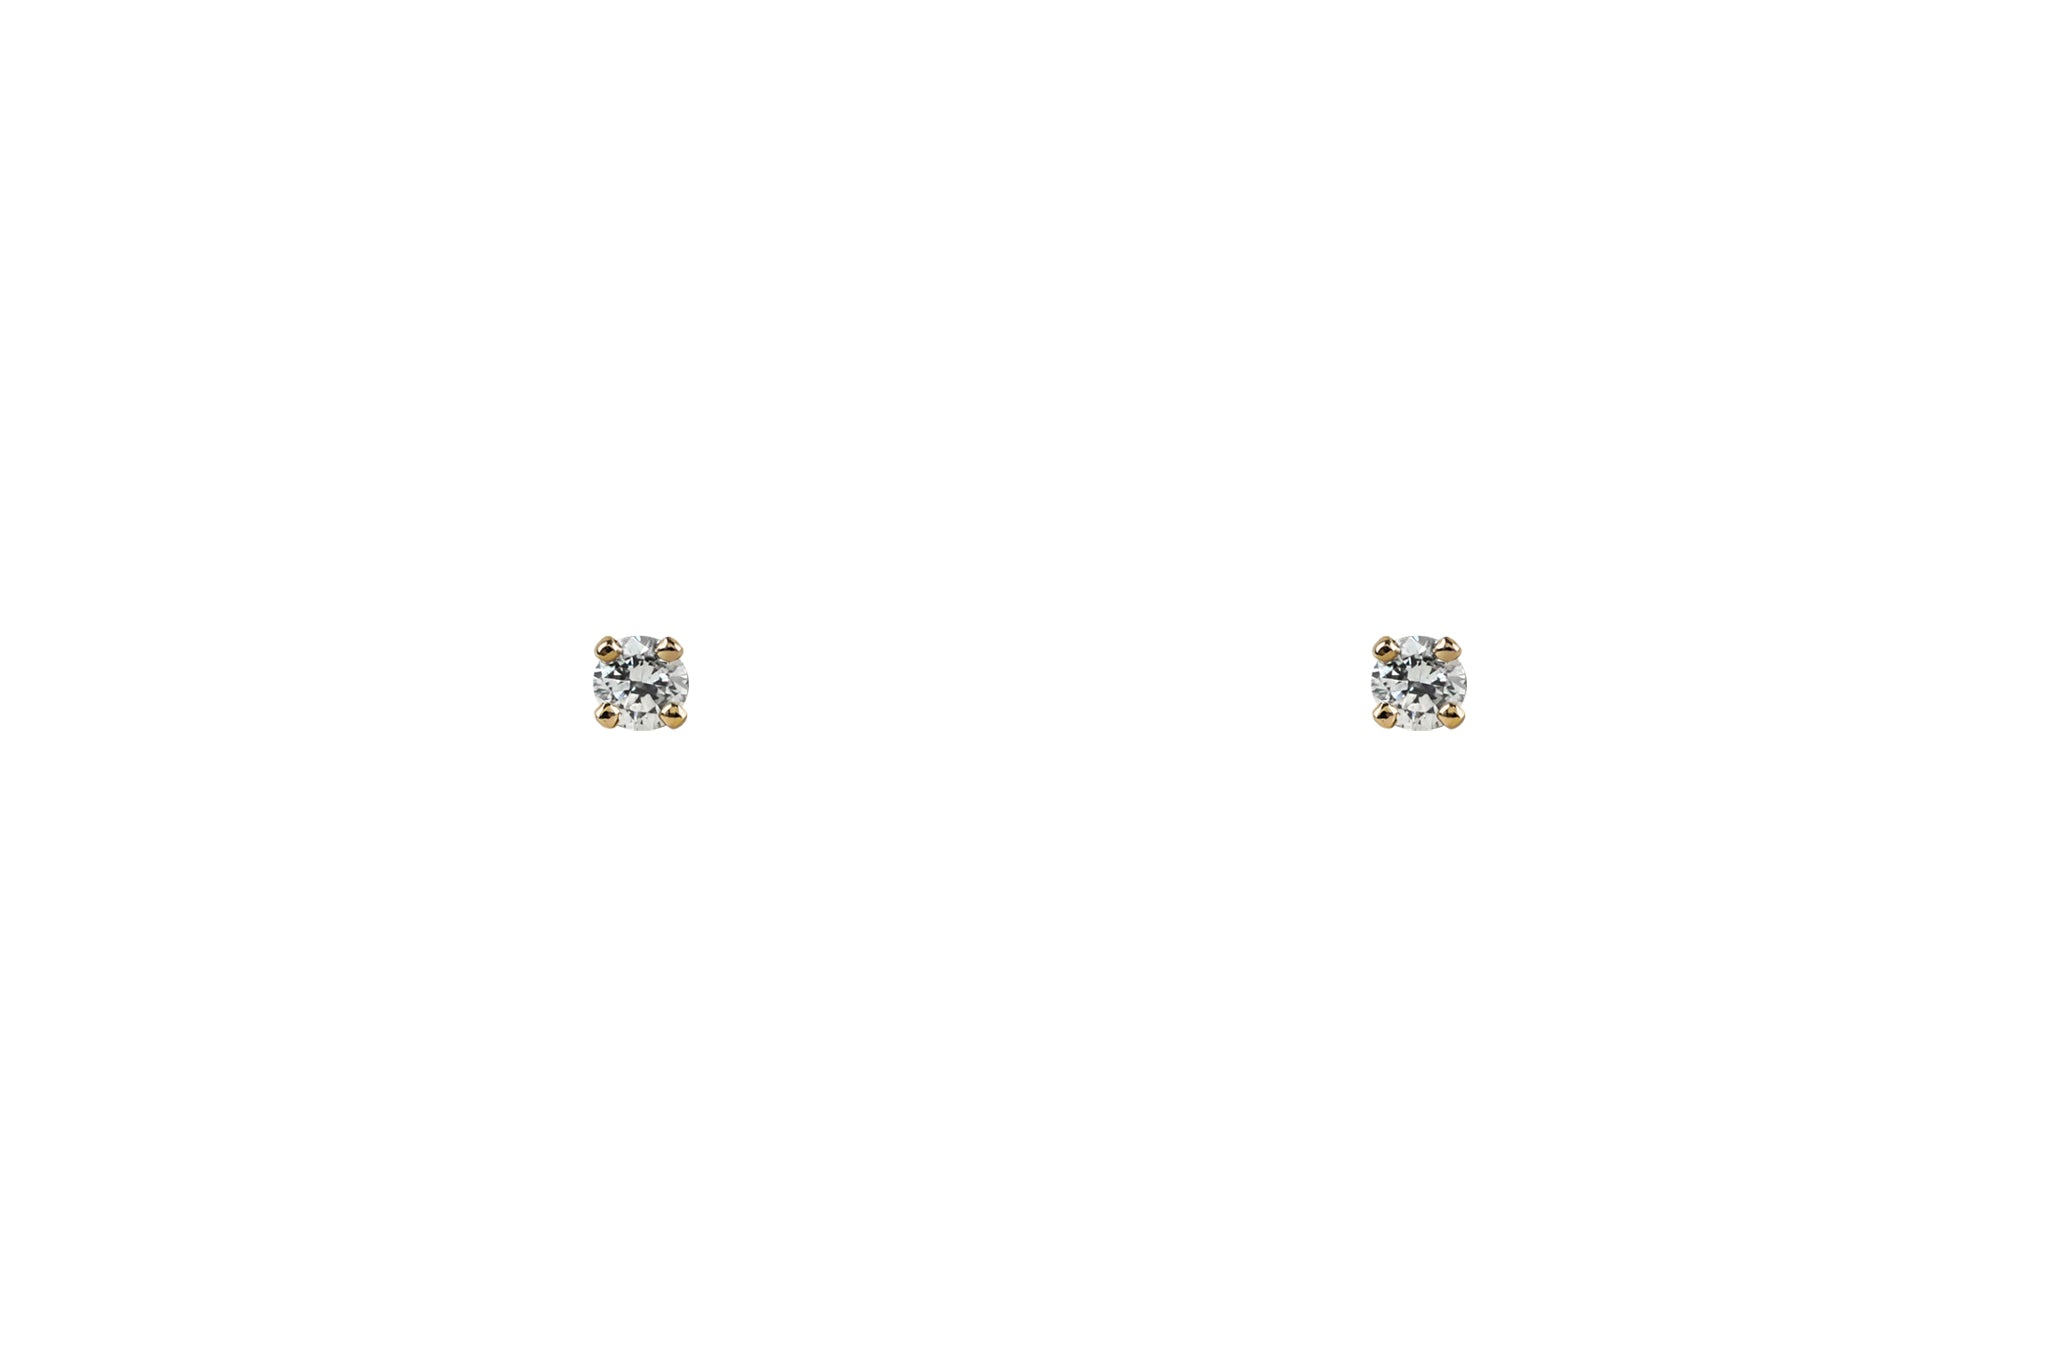 14k Gold Tiny Diamond Earrings